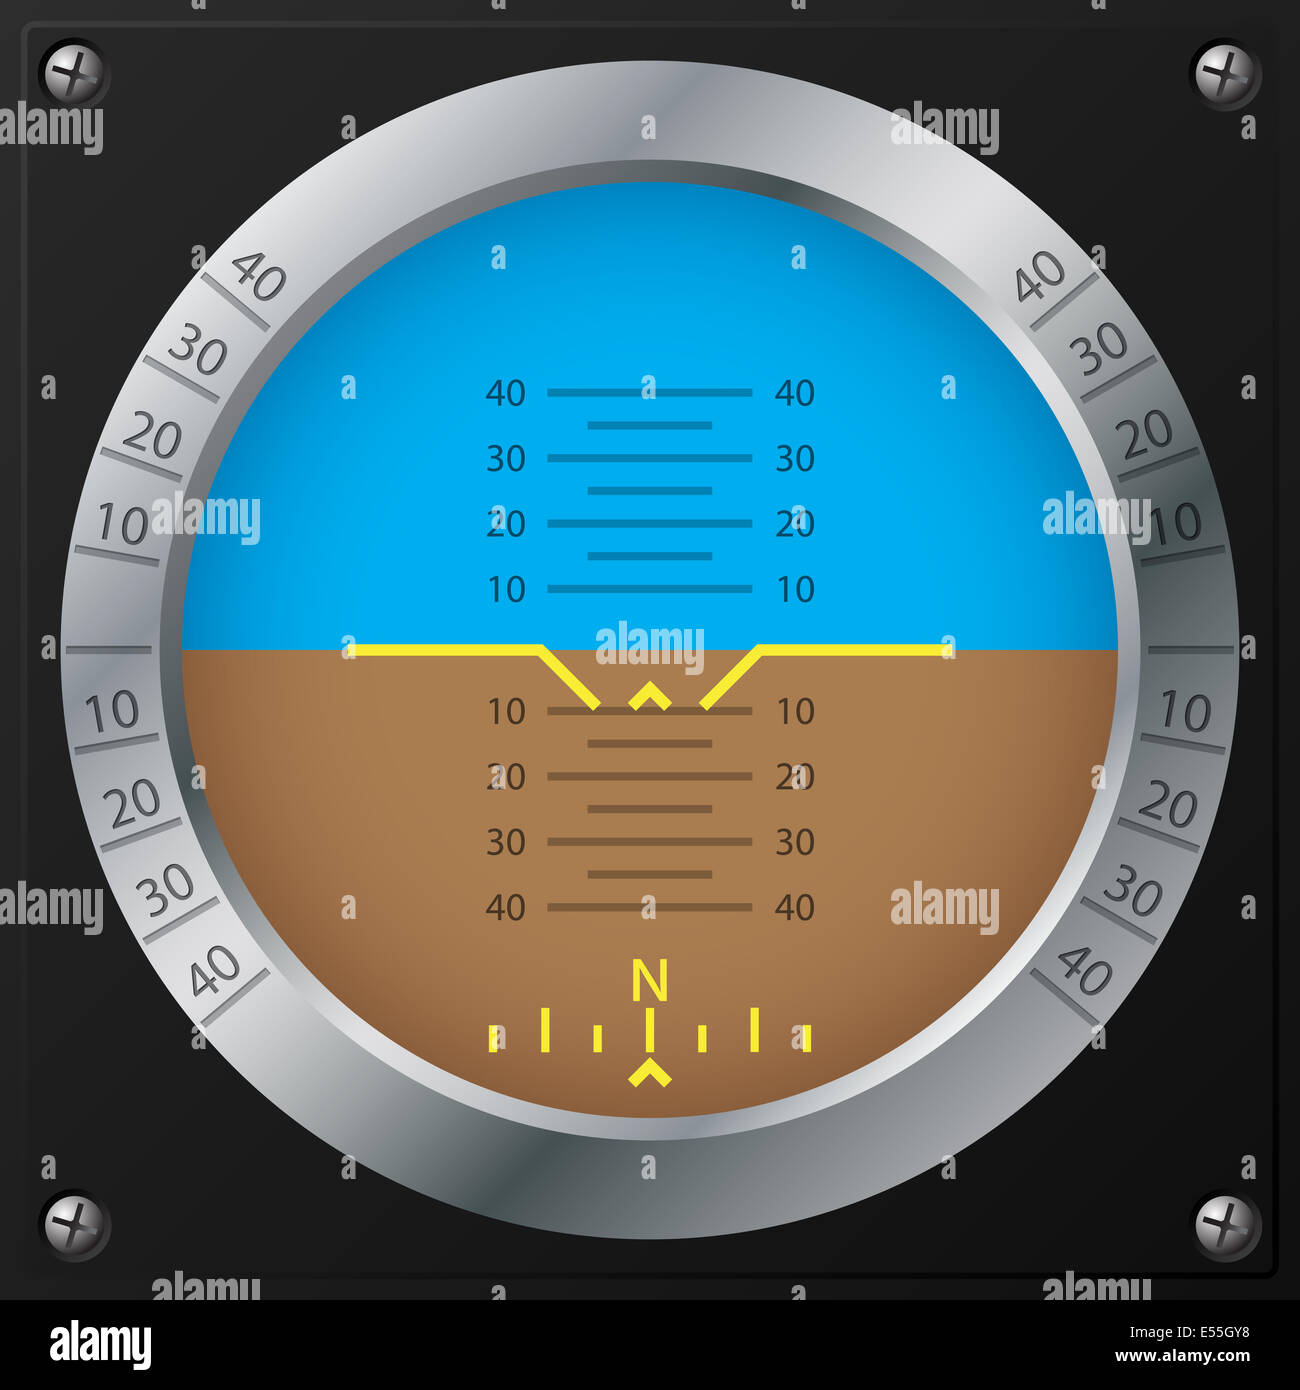 Attitude indicator design on screwed black plate for airplanes - Stock Image